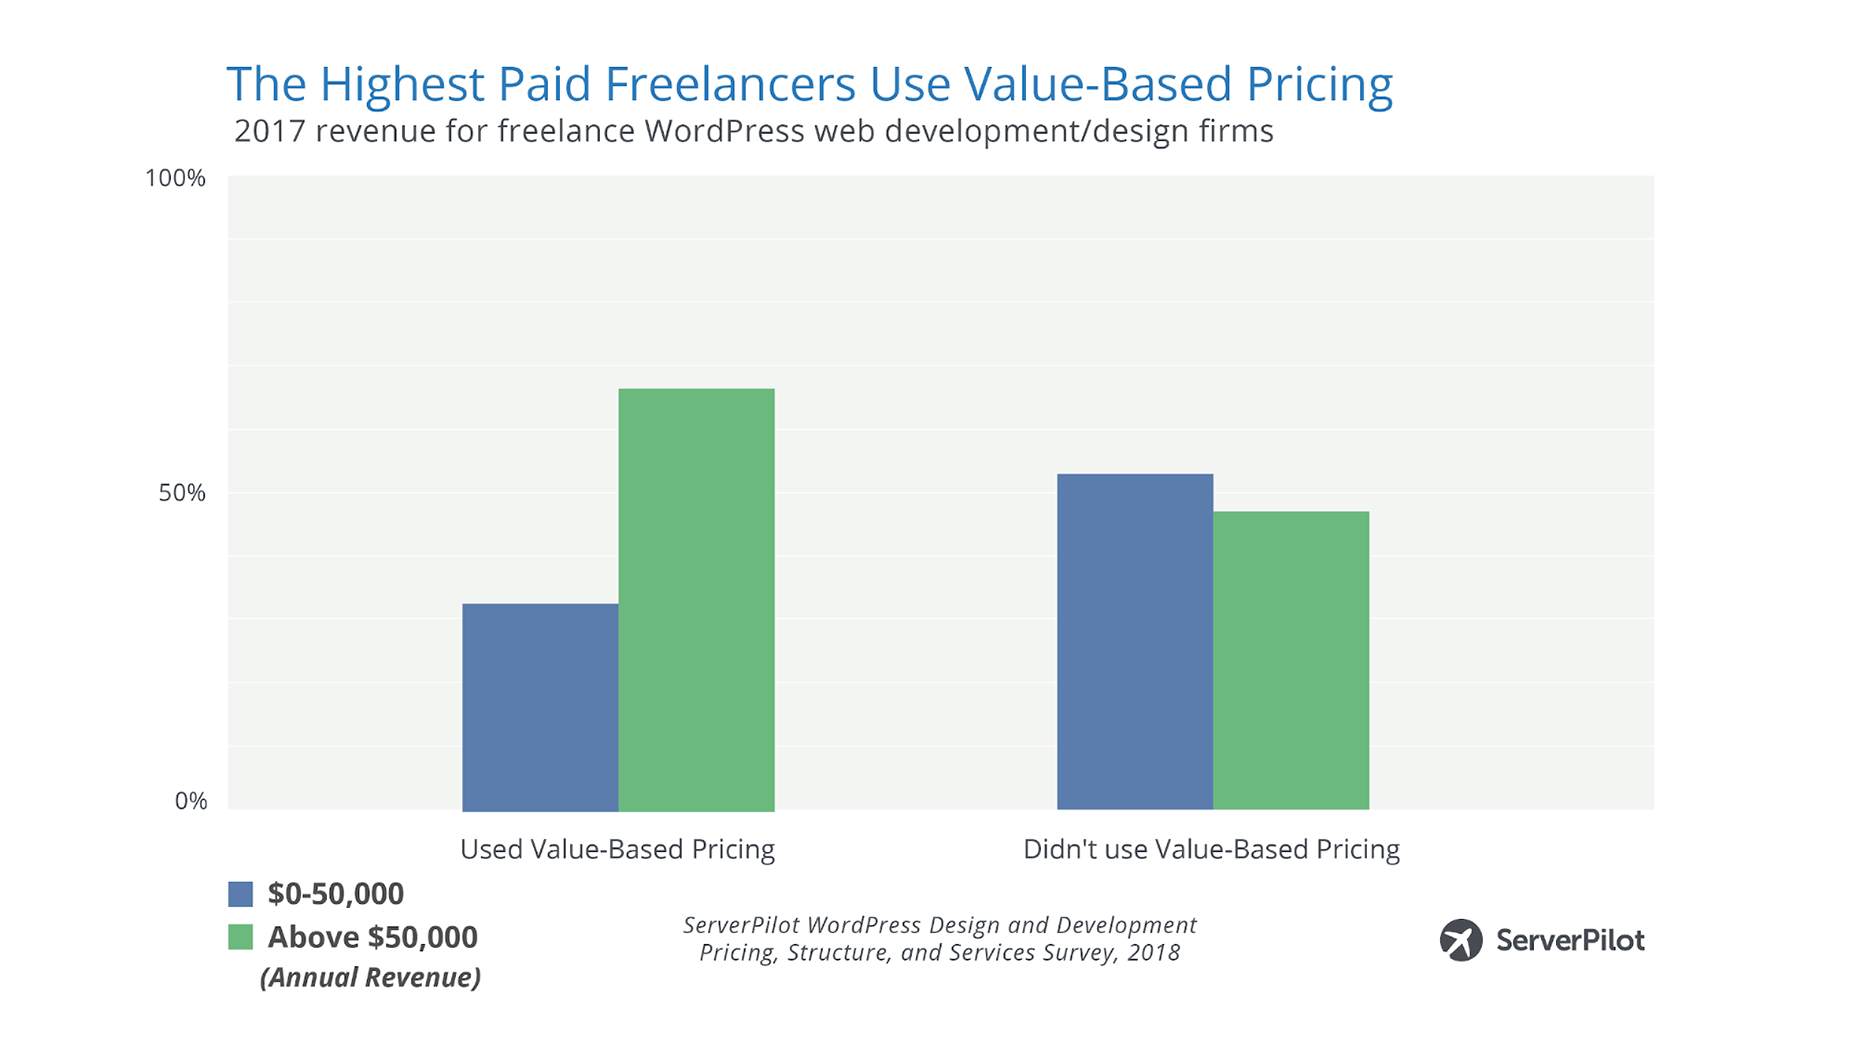 Could Value-Based Pricing Be the Key to Higher Revenues